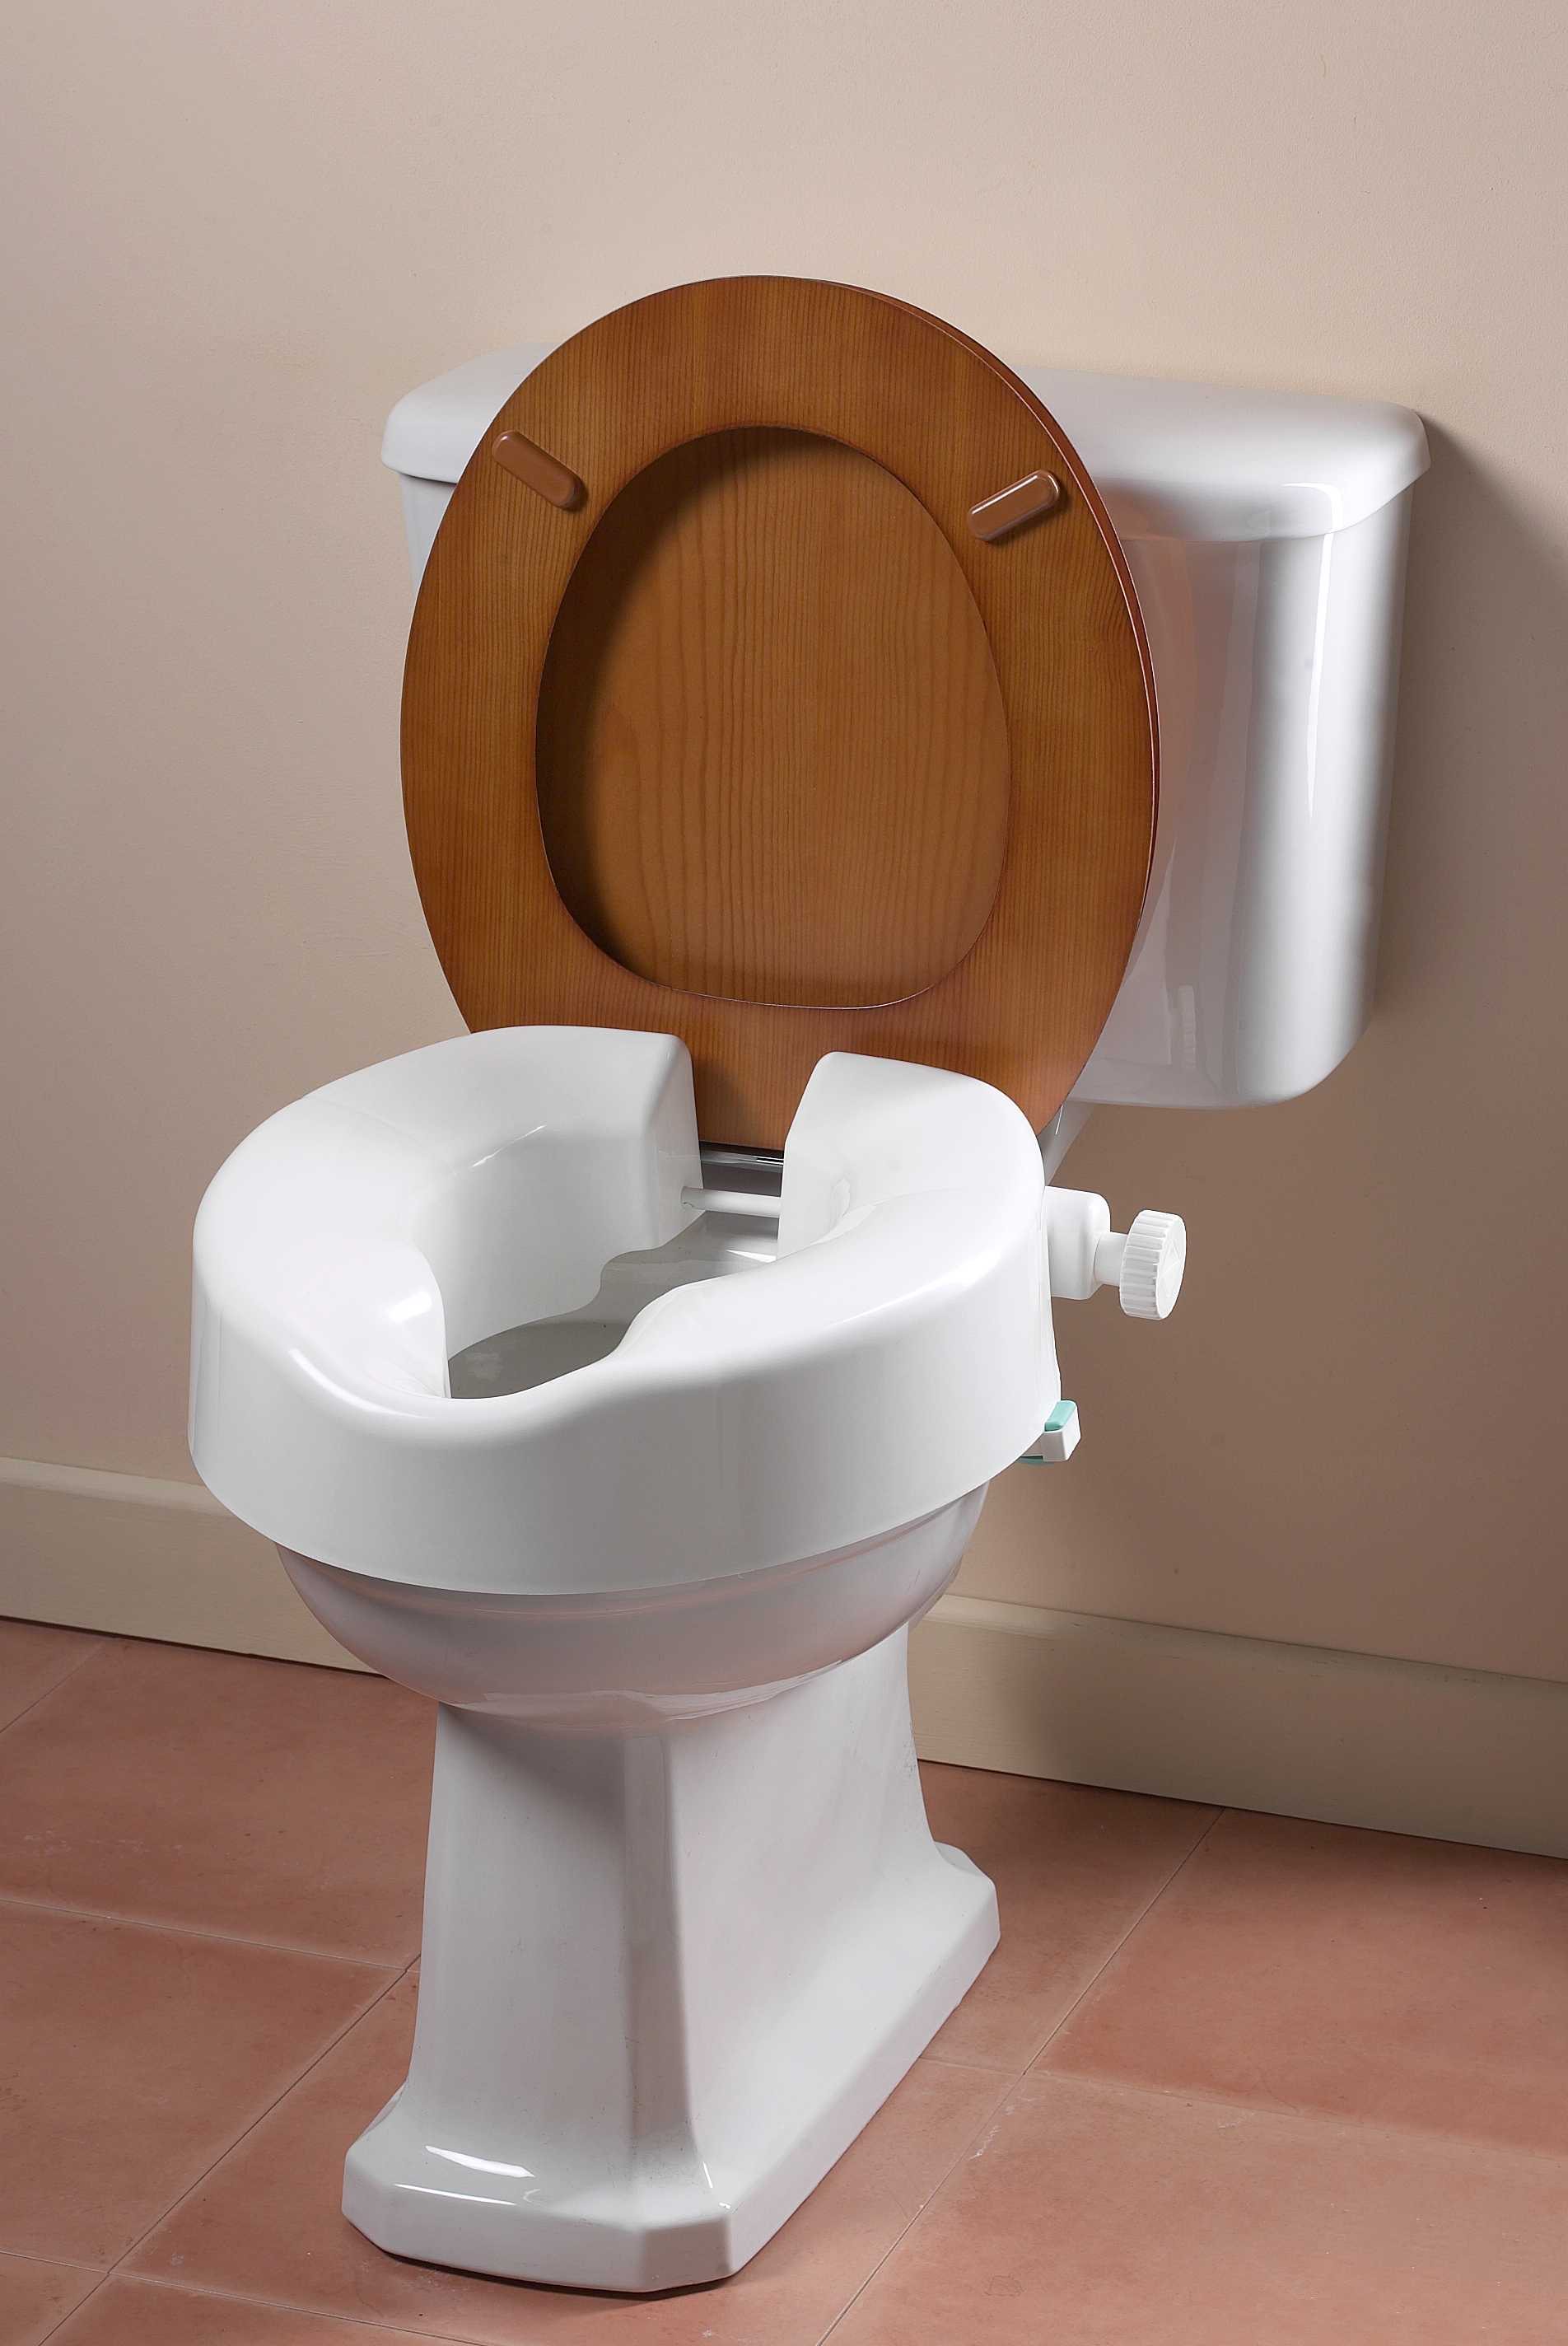 Groovy Uni Fix Raised Toilet Seat Living Made Easy Dailytribune Chair Design For Home Dailytribuneorg